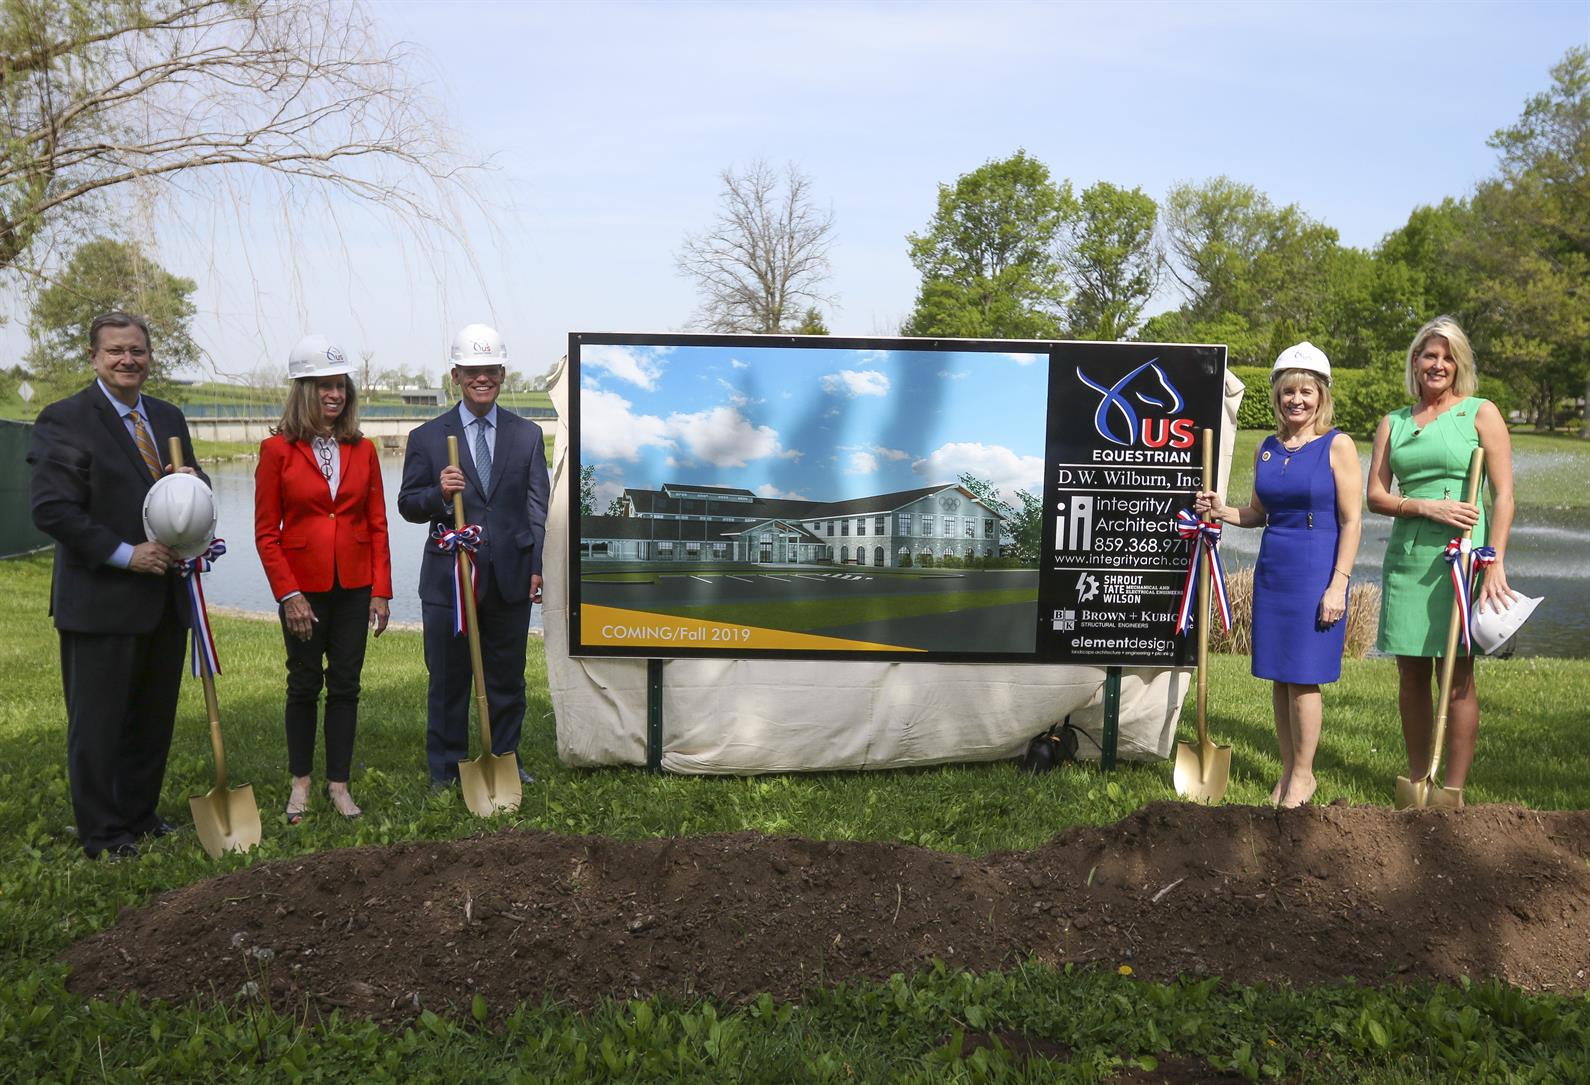 Tandy C  Patrick Recognized In Groundbreaking for Kentucky Horse